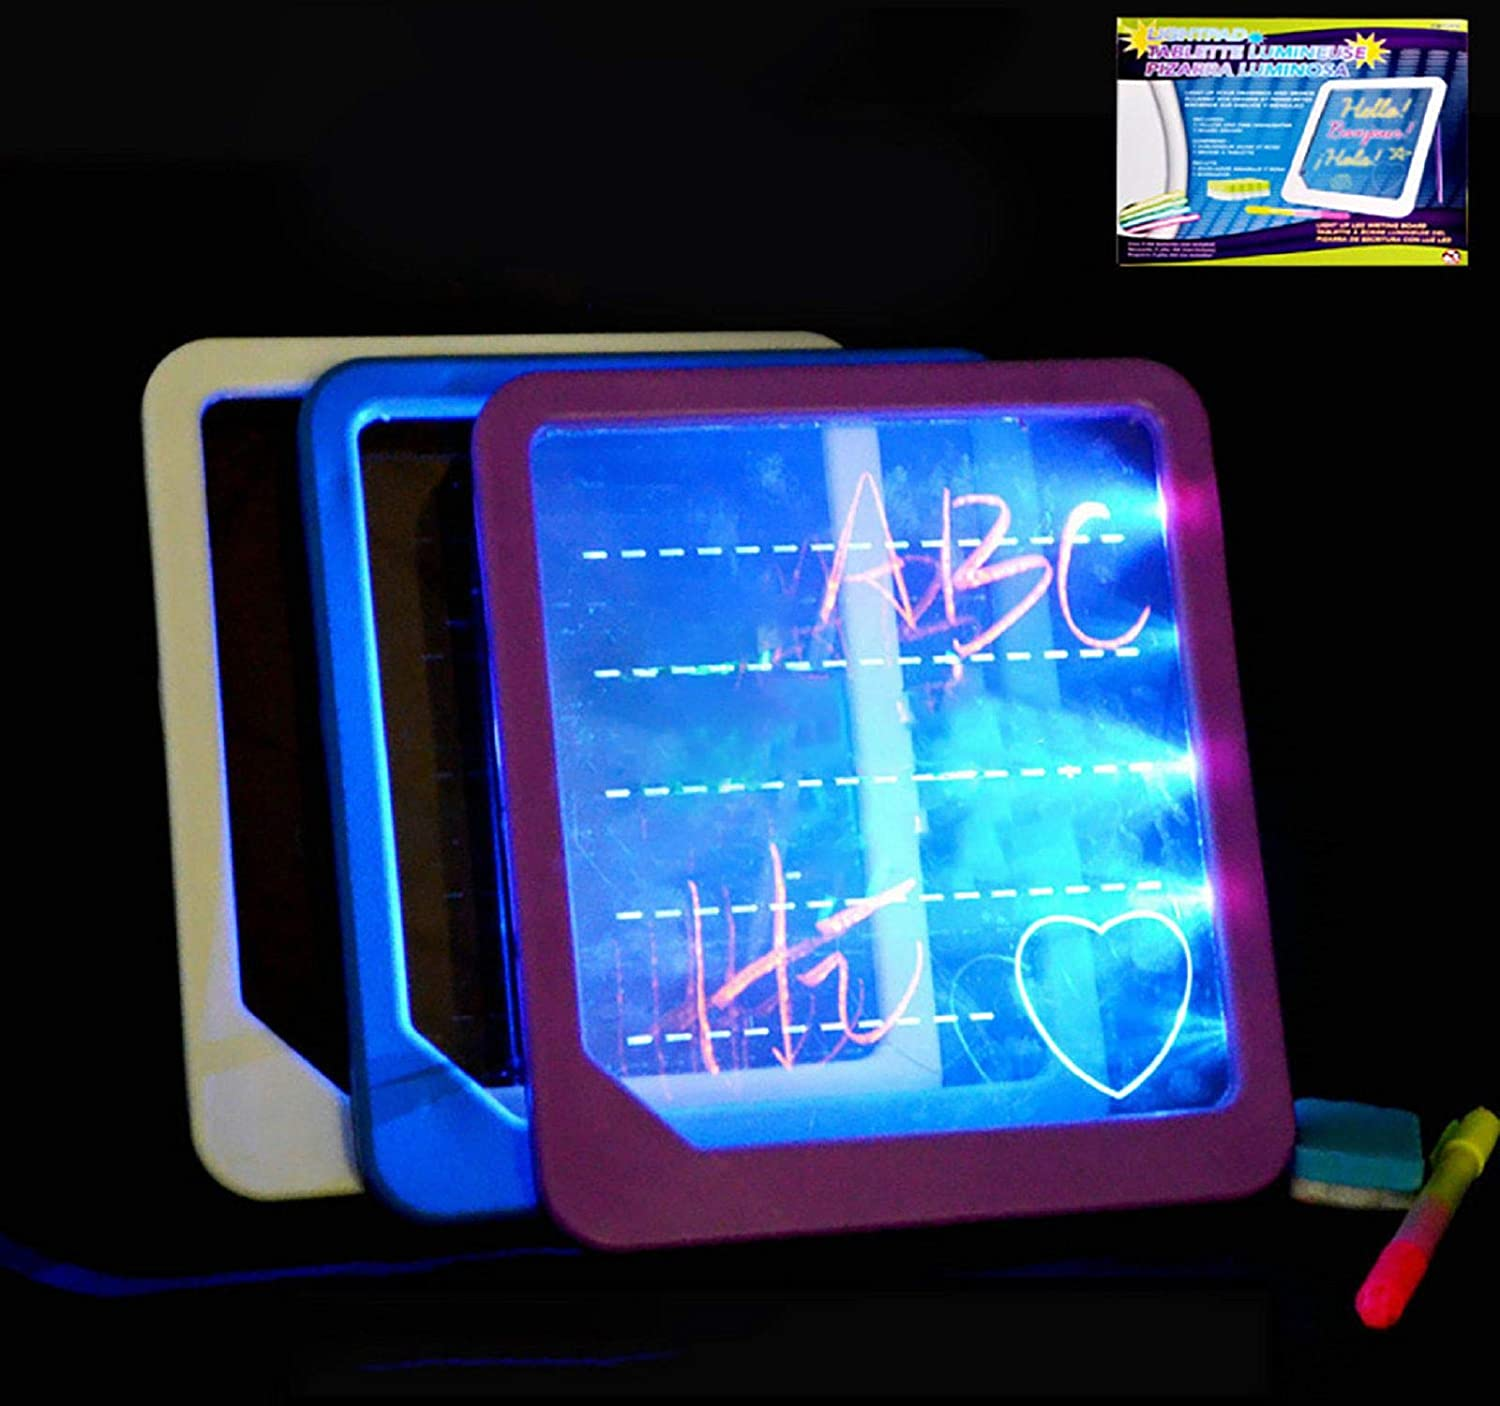 Cinhent Ultra-Thin Portable Neon LED Light Glow Drawing Board Translucent See Through Surface LED Artcraft Tracing Light Box Light Pad for Kids Artists Drawing Sketching Animation Discovery